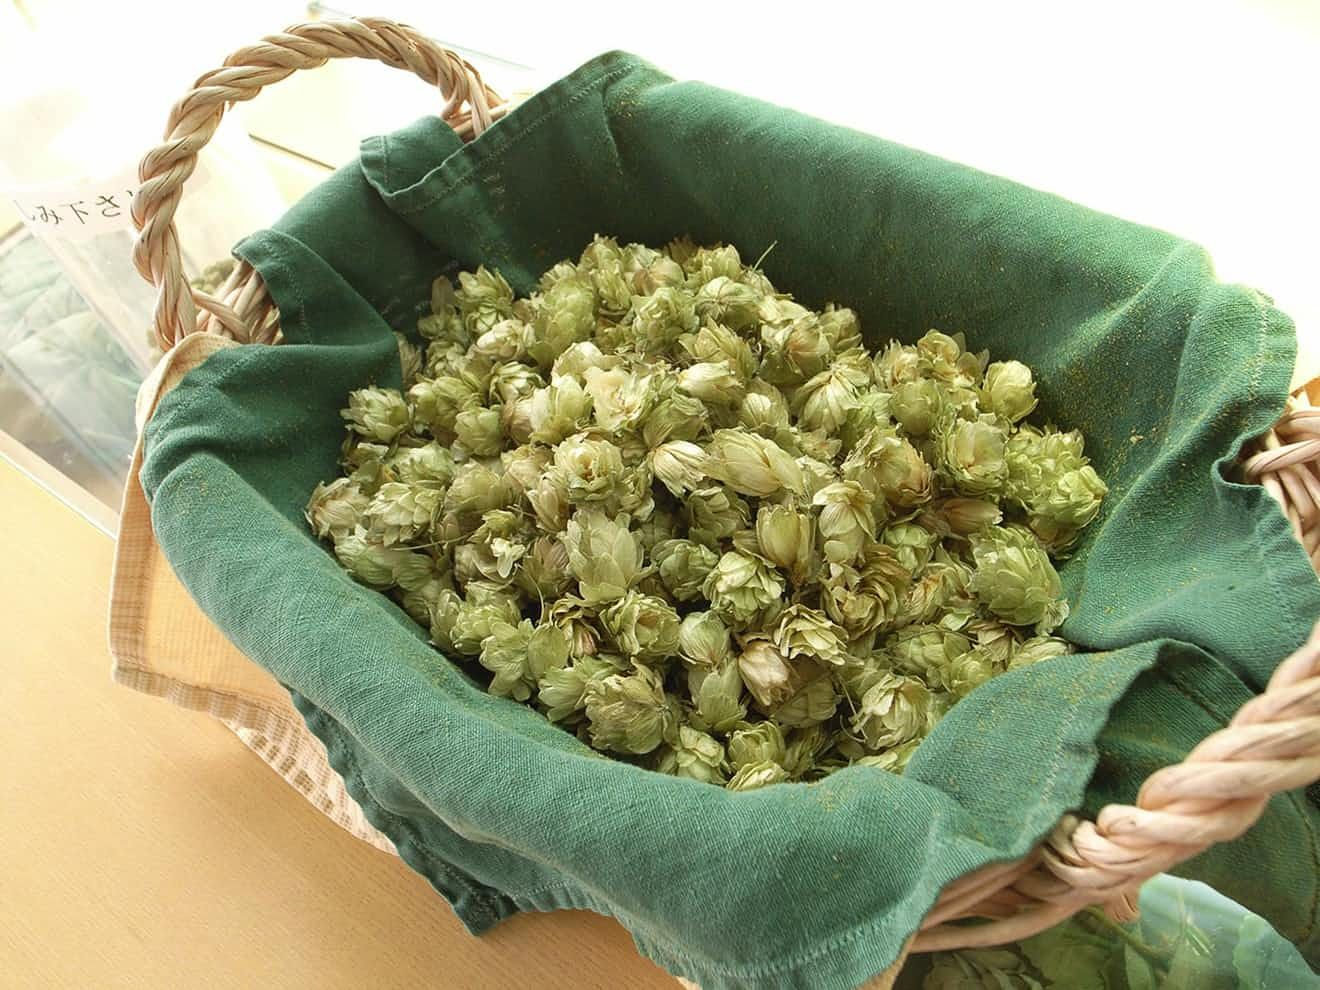 drinking hoppy beer could protect your liver  hoppy beer liver health food